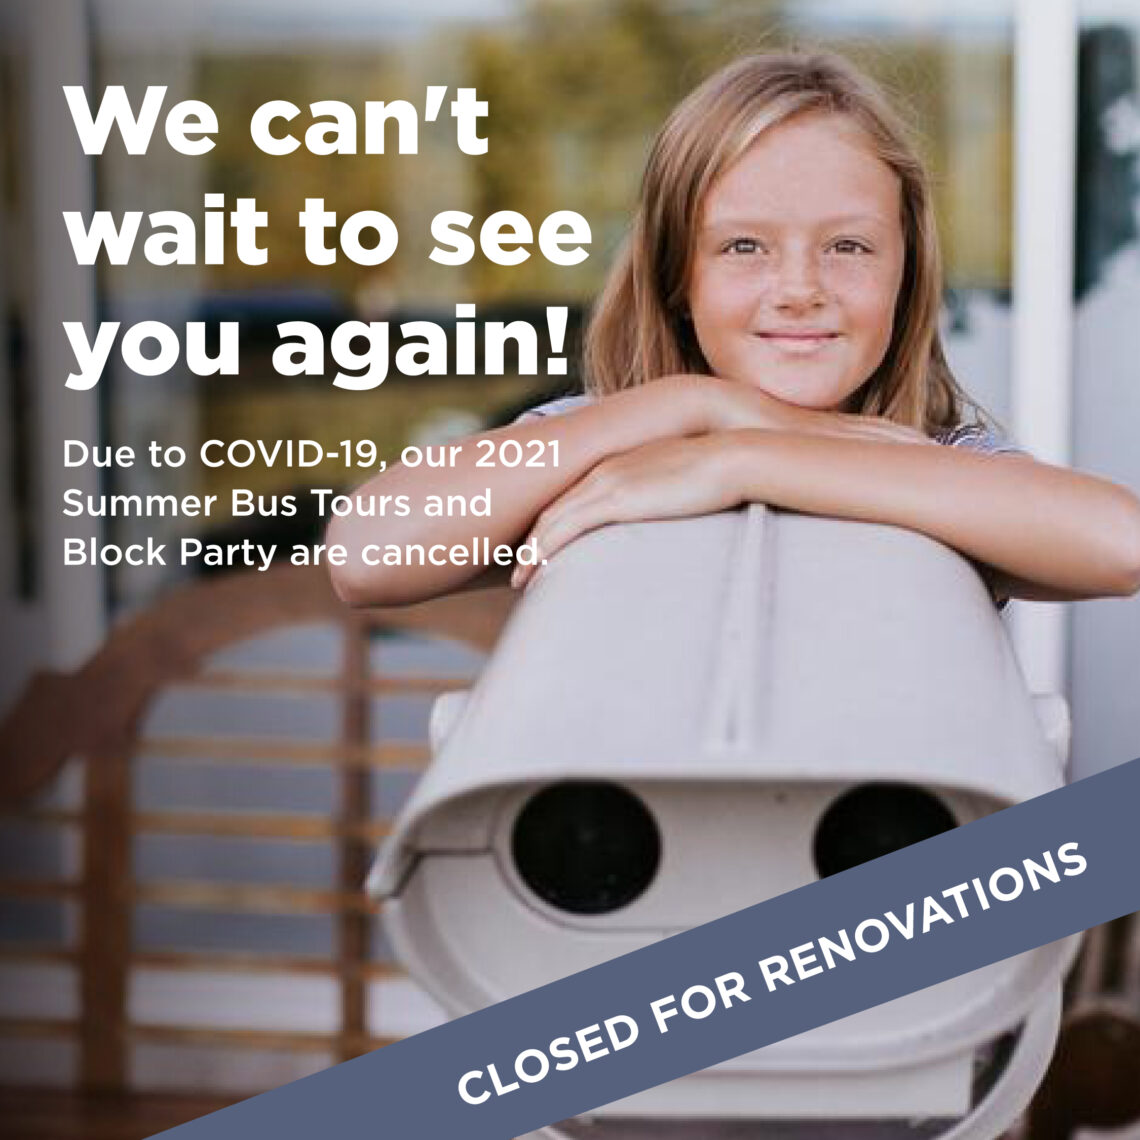 Visitors' Centre closed for renovations. Bus Tours and Block Party cancelled.